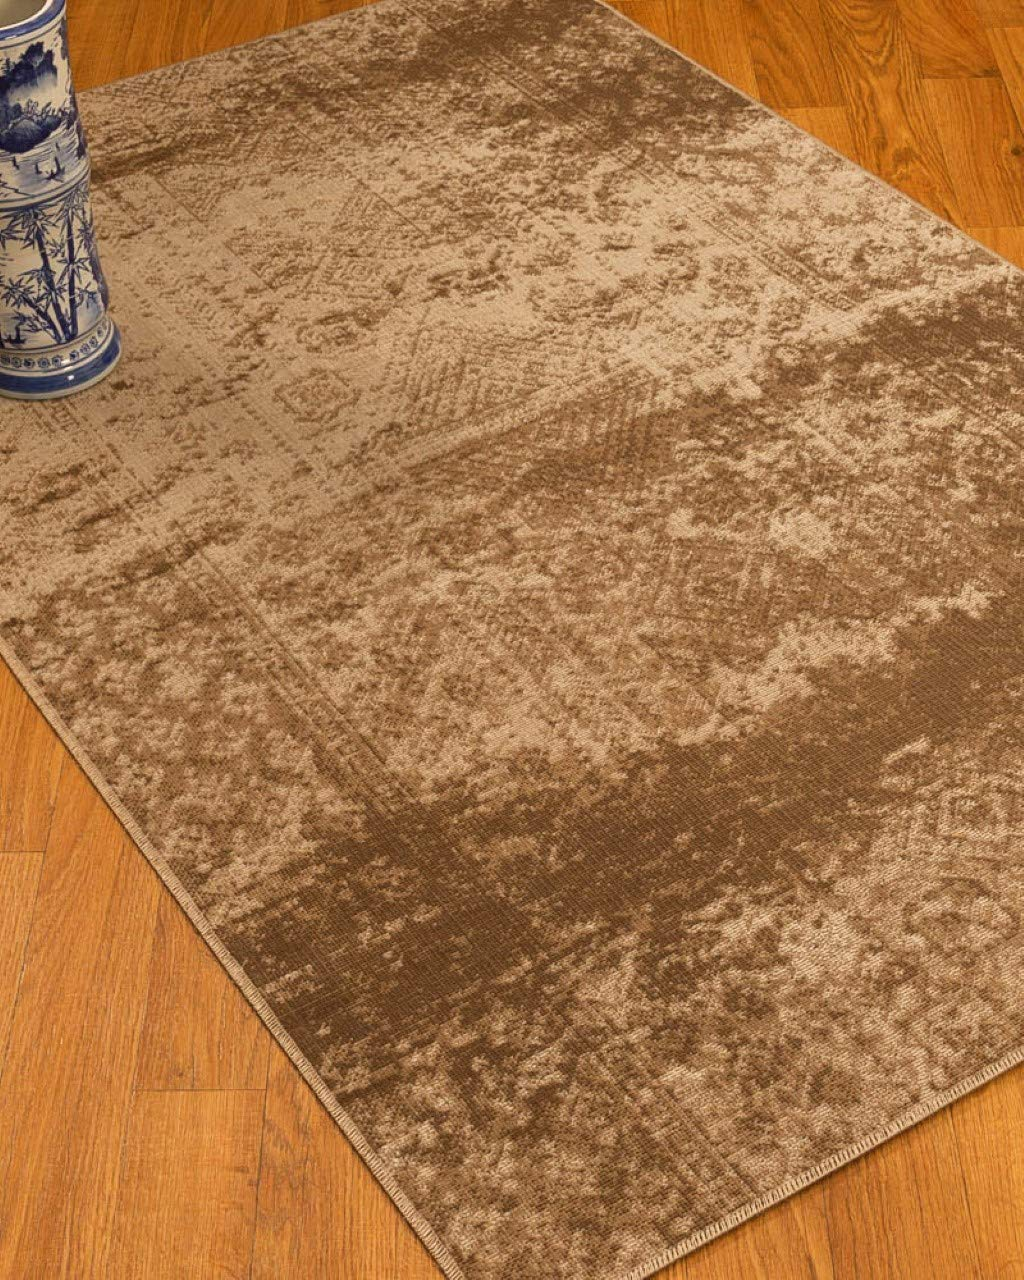 Natural Area Rugs Vintage Oriental Ibiza Polypropylene Rug 8 x 10 Brown